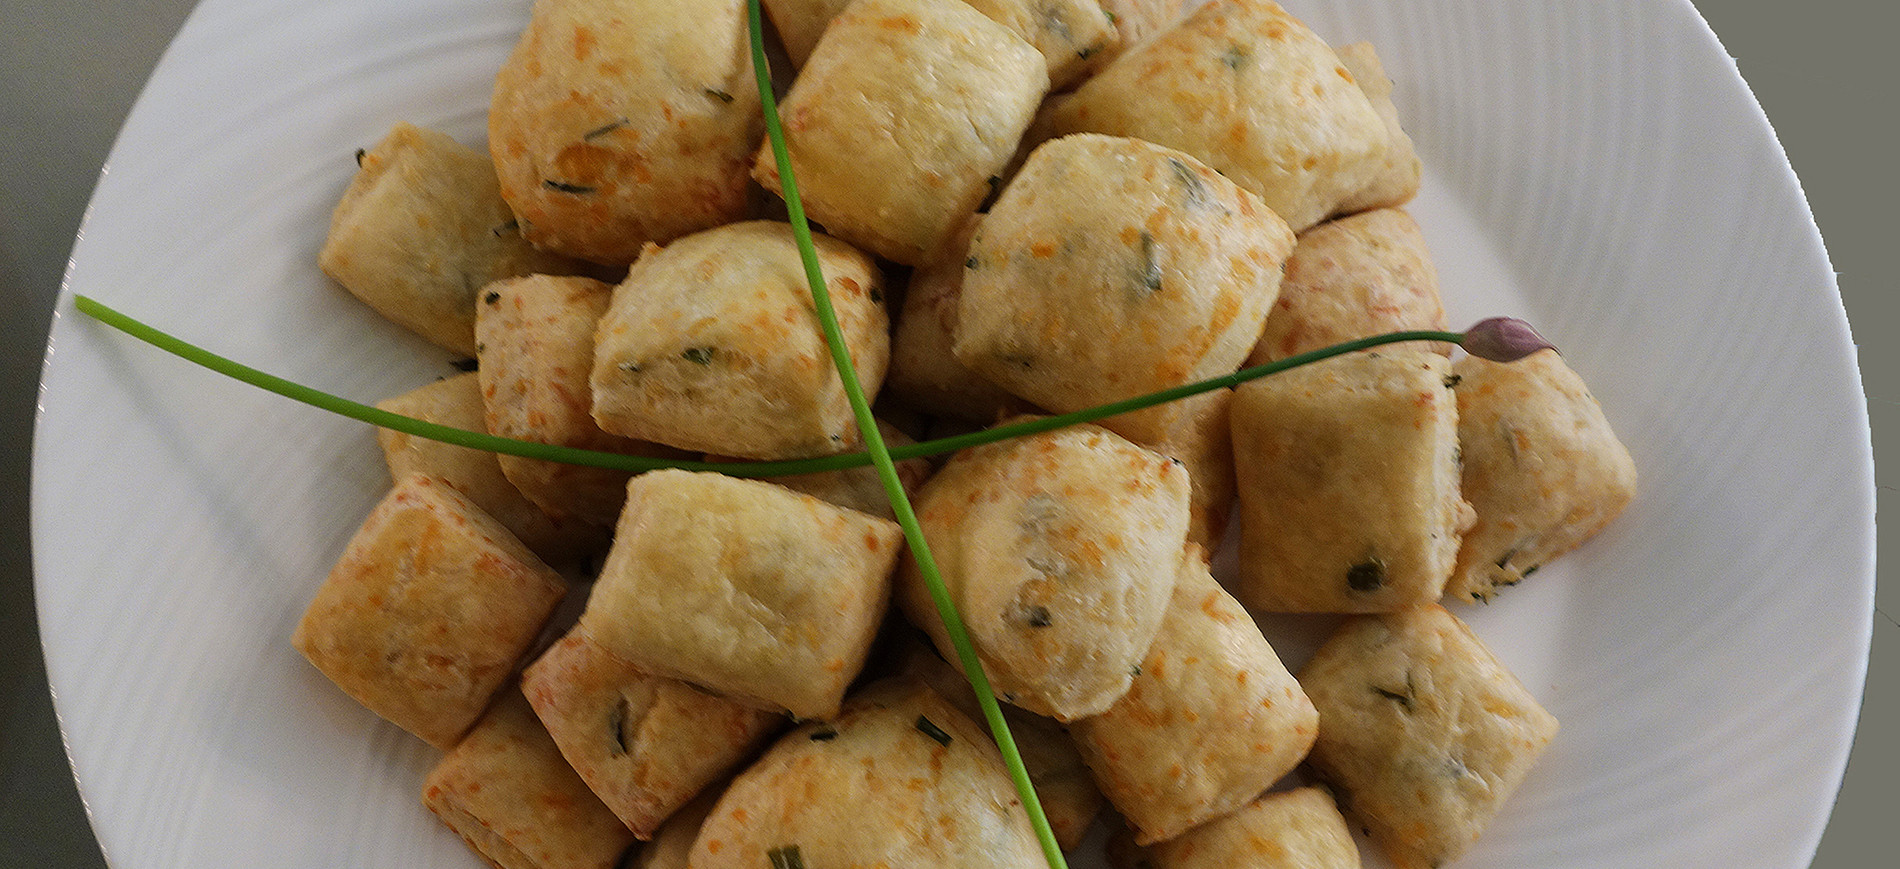 Italian Cheese Biscuits on white plate with chive garnish